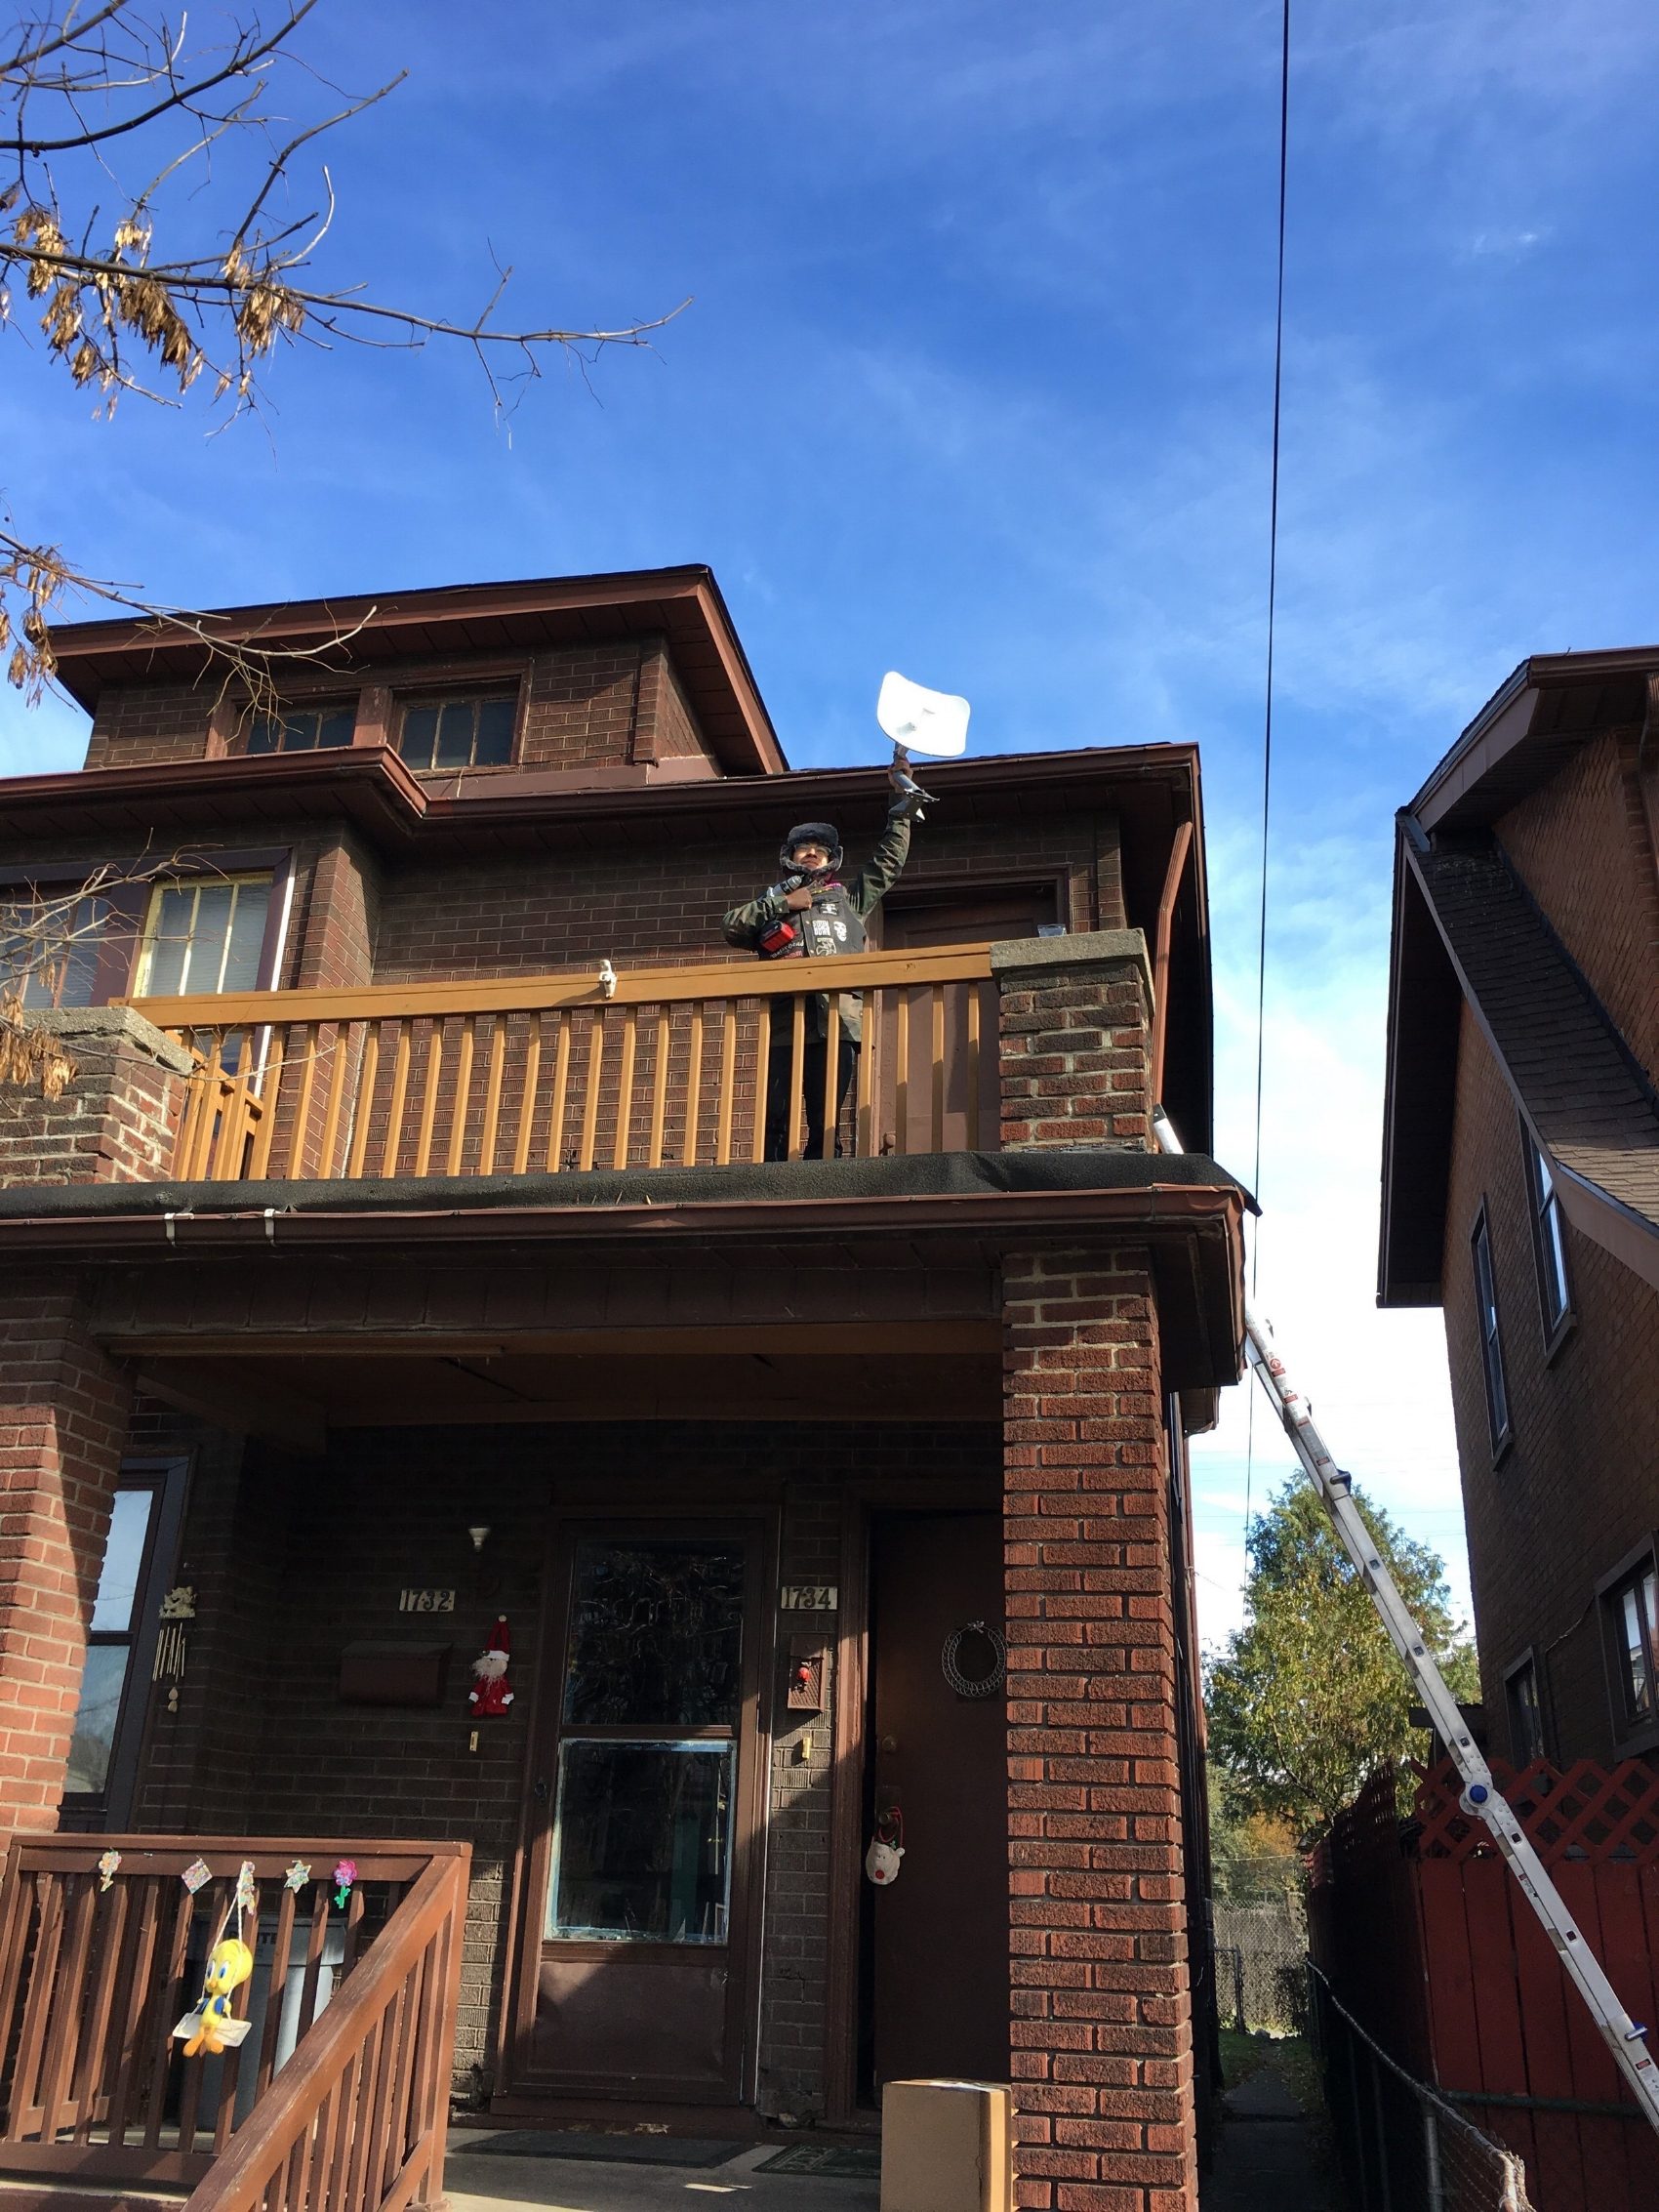 Installing a point to point router onto a neighbor's house in SWD.